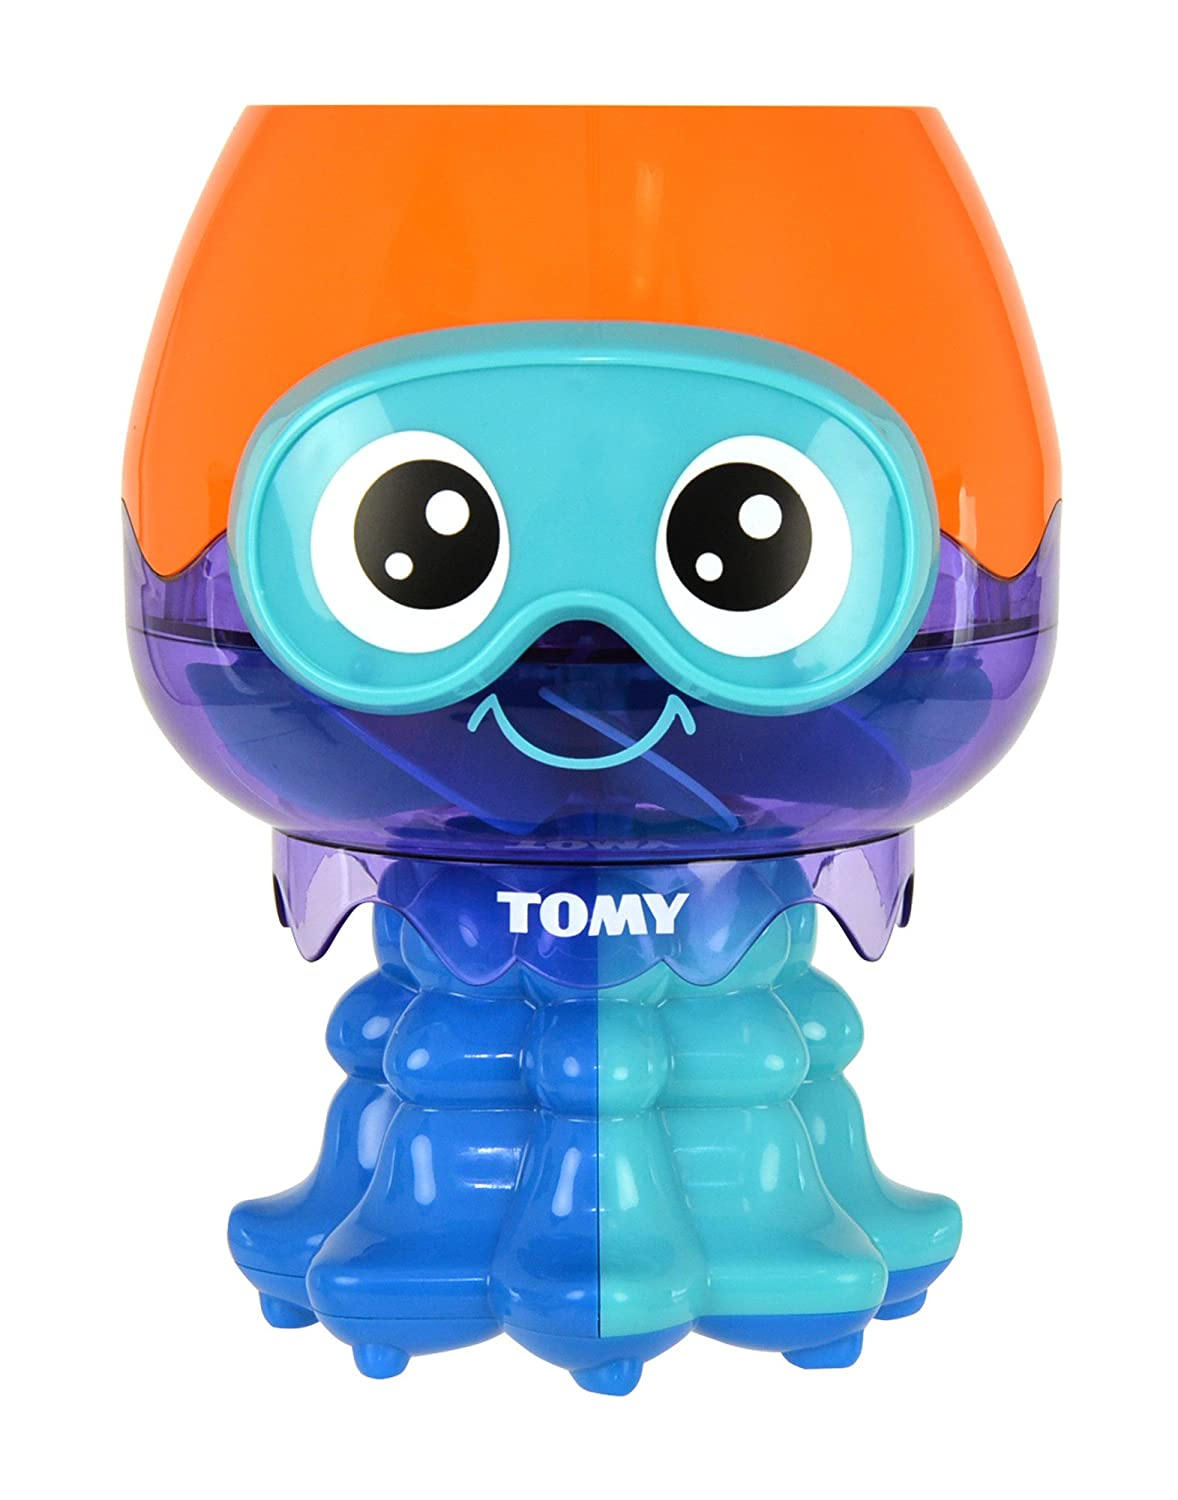 TOMY Bath E72548 Splash and Spin Jellyfish Toy